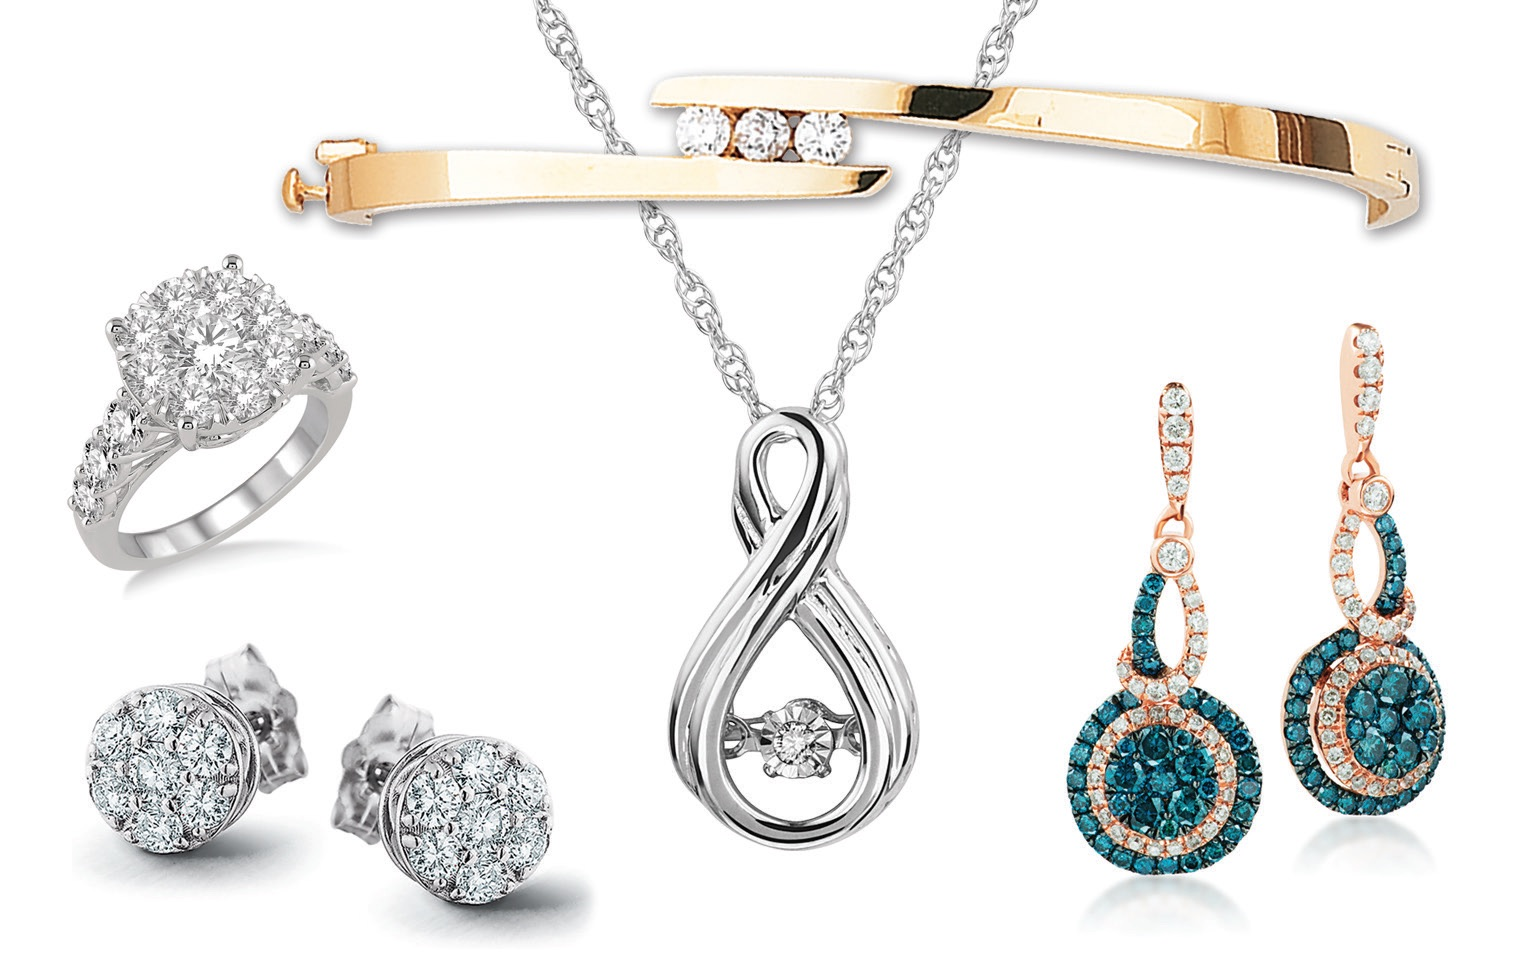 Jewelry Hints for Santa from Houston Jewelry